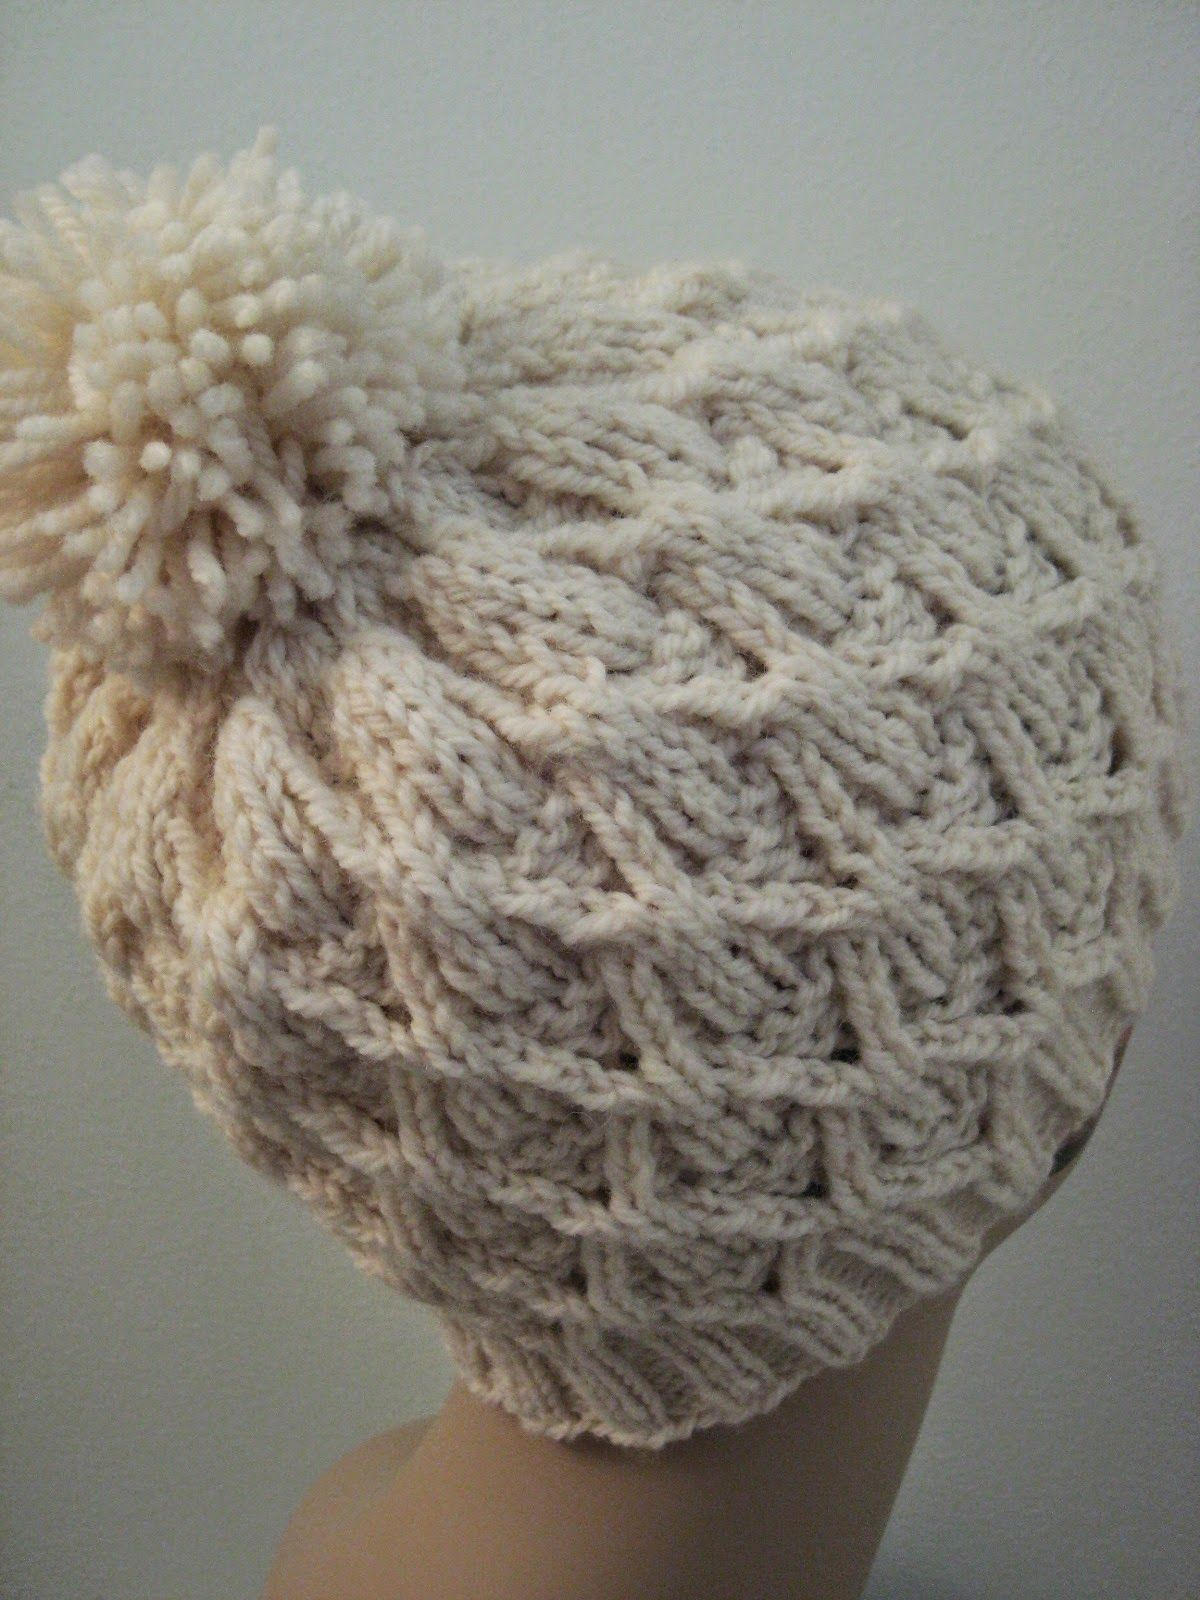 Free hat knitting patterns knitted hat patterns knit patterns complete with an adorable yarn pom pom this easy knit hat pattern is perfect bankloansurffo Gallery